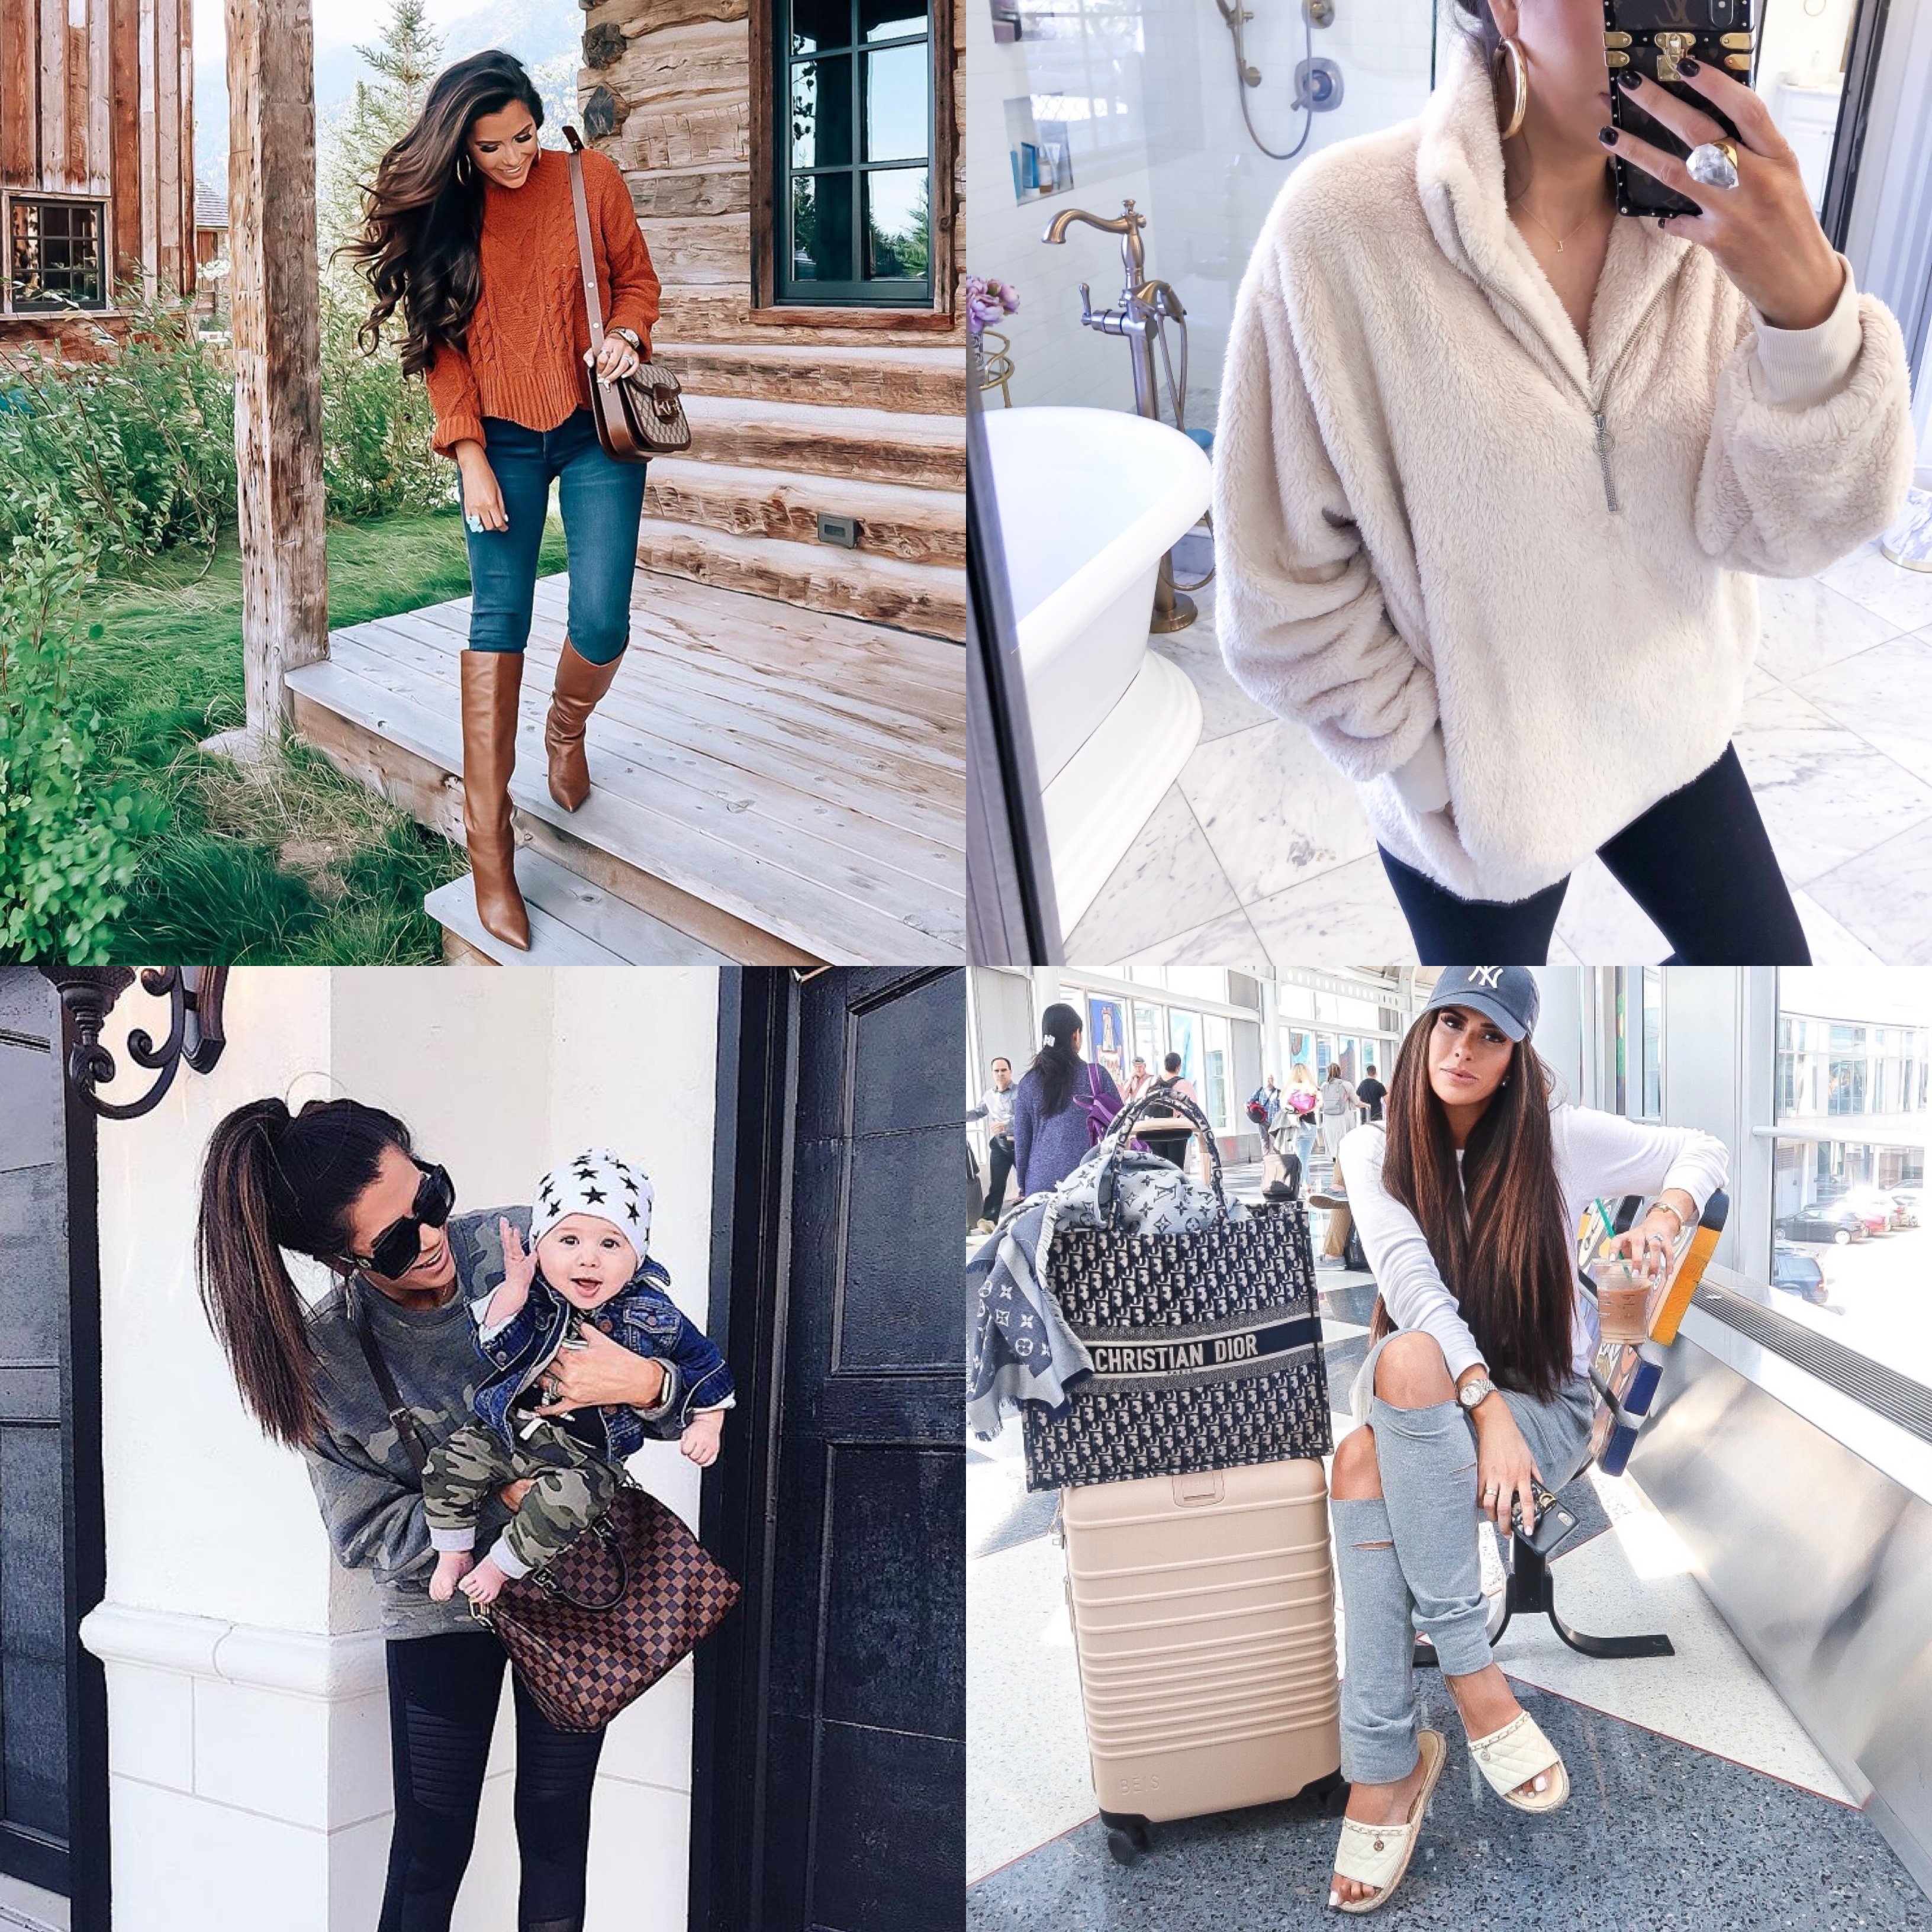 best black friday sales 2019, emily gemma, express black friday sales | Mega Black Friday Sales and Deals Guide!! by popular Oklahoma life and style blog, The Sweetest Thing: collage image of a woman wearing various Black Friday sale items.